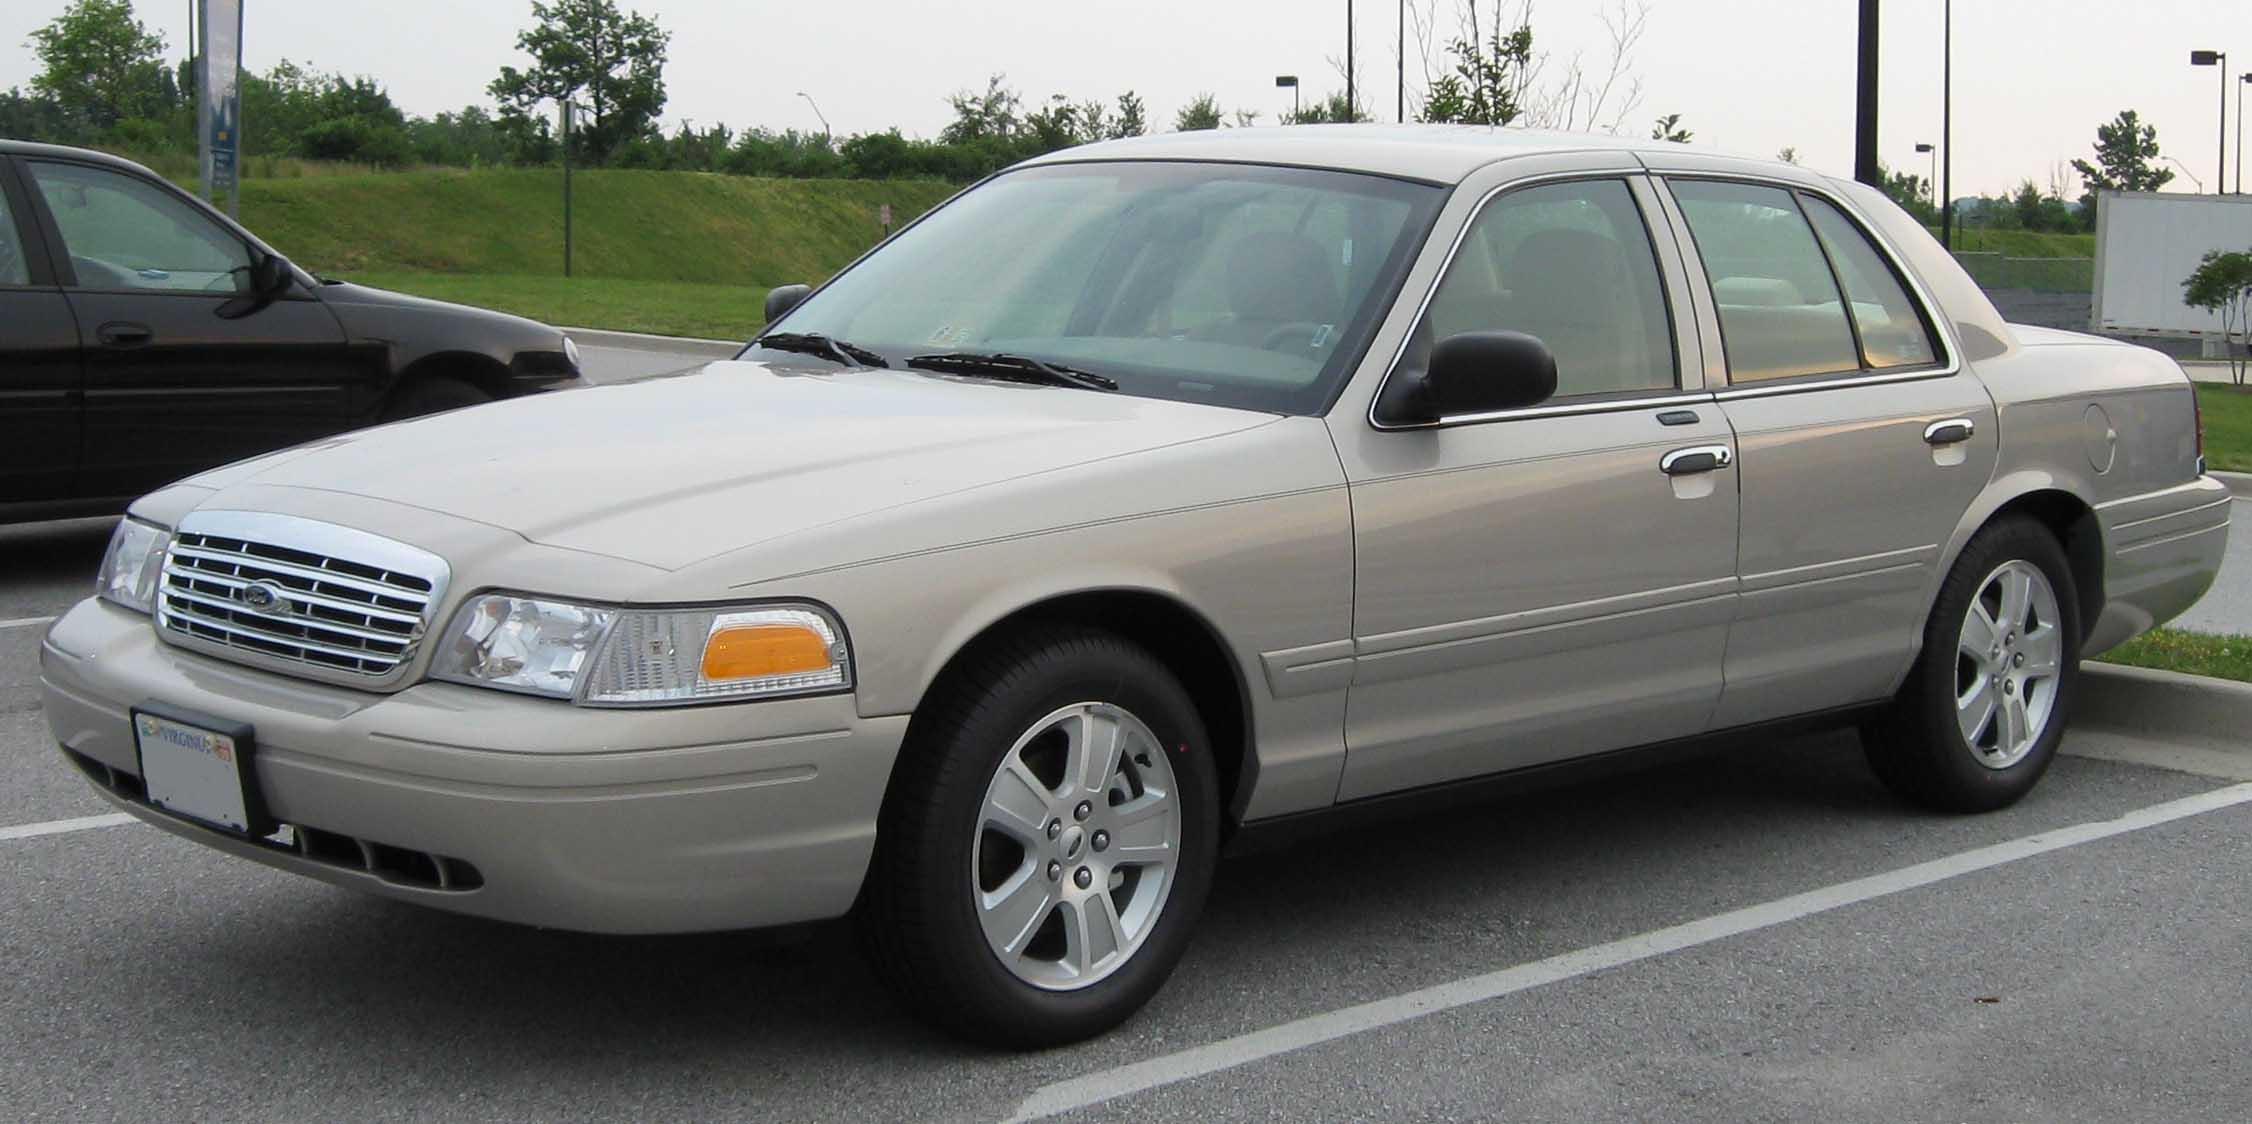 1998 Ford Crown Victoria #8